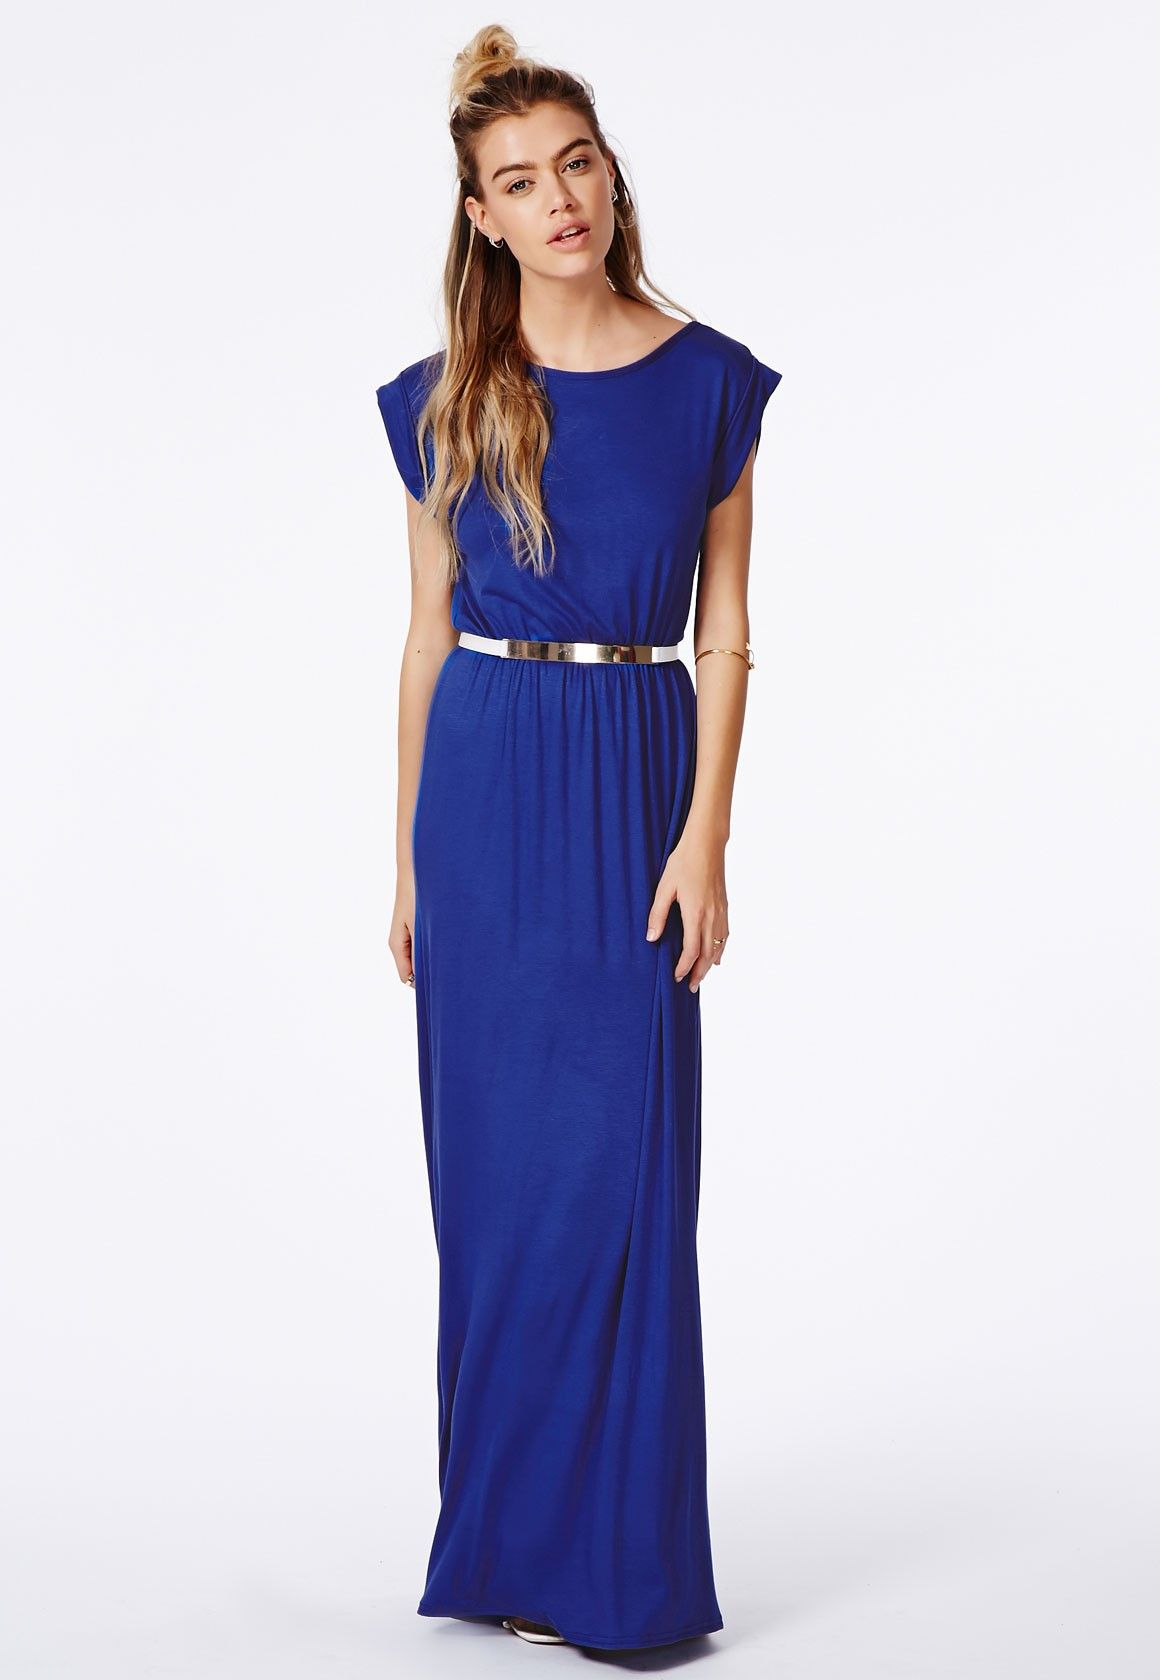 Collection Blue Maxi Dress Pictures - Reikian